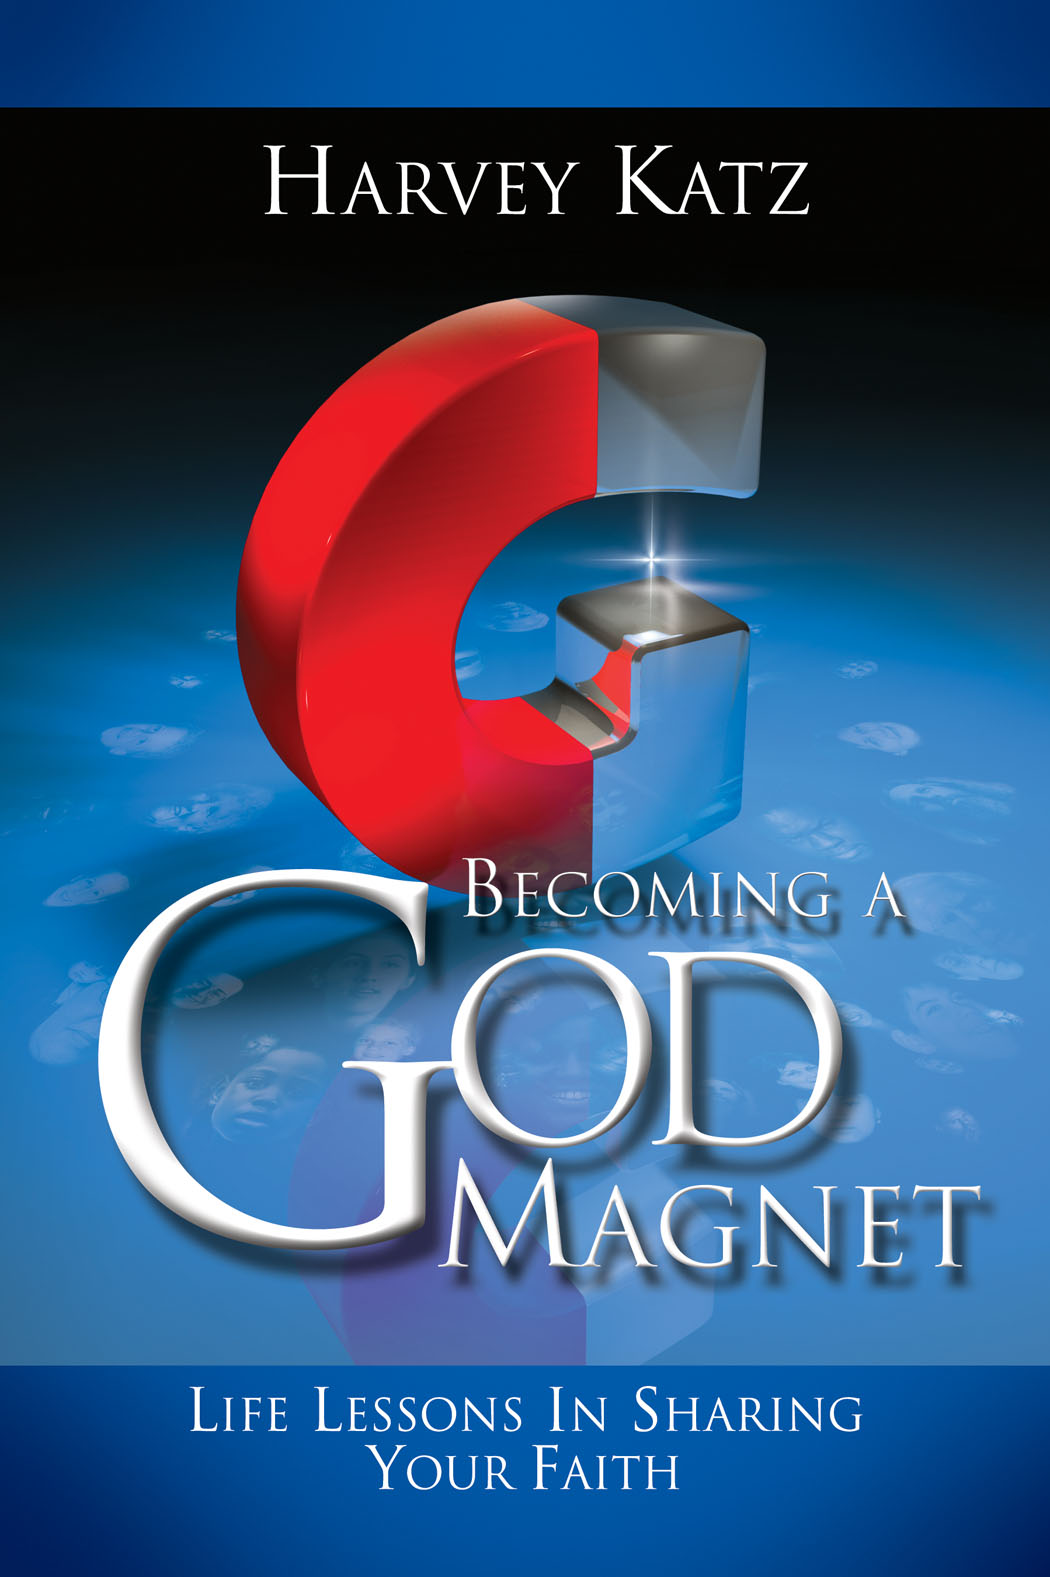 Becoming a God Magnet